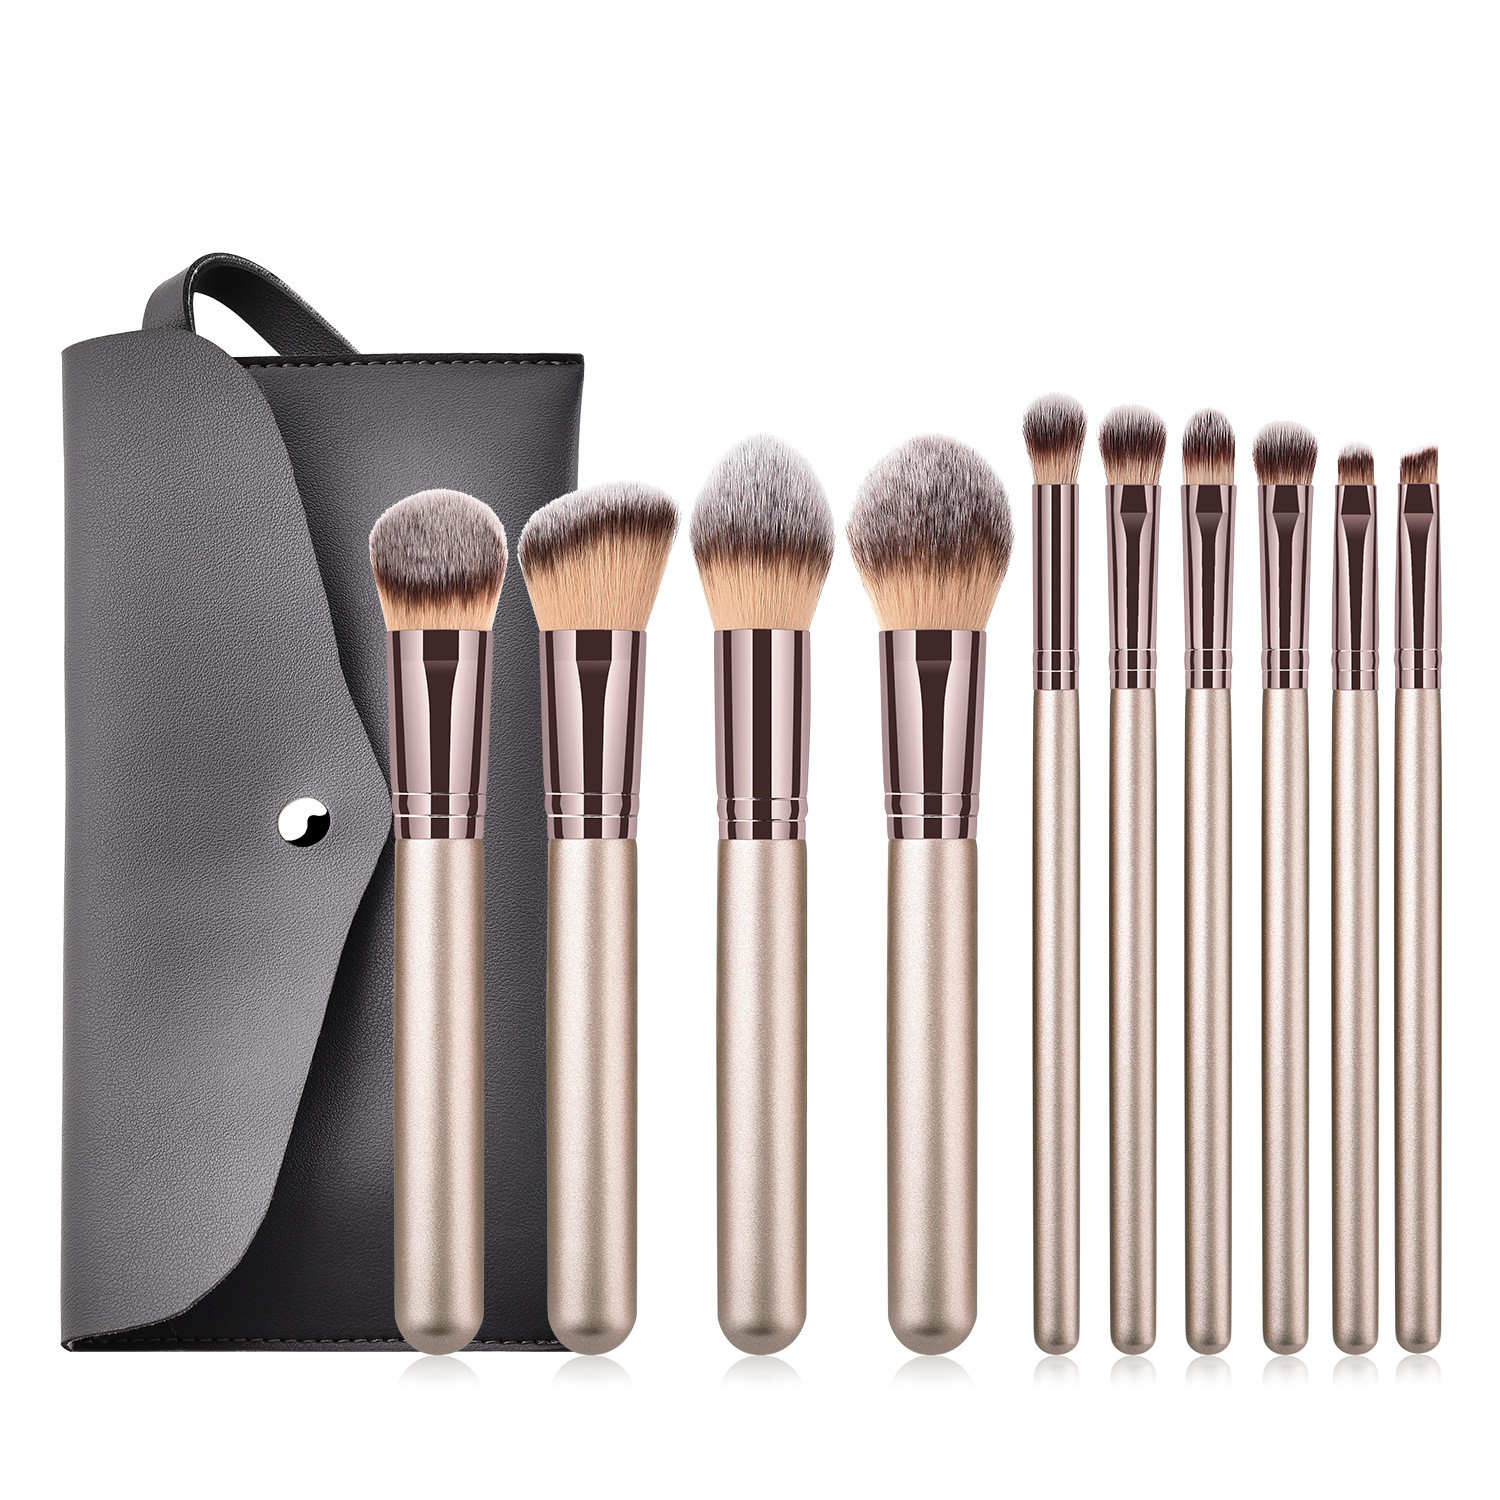 Makeup Brush-The Champagne Gold 10pcs Super Soft Fiber Makeup Brushes Set-high Quality Face&eye Cosmetic Pens-nylon Hair